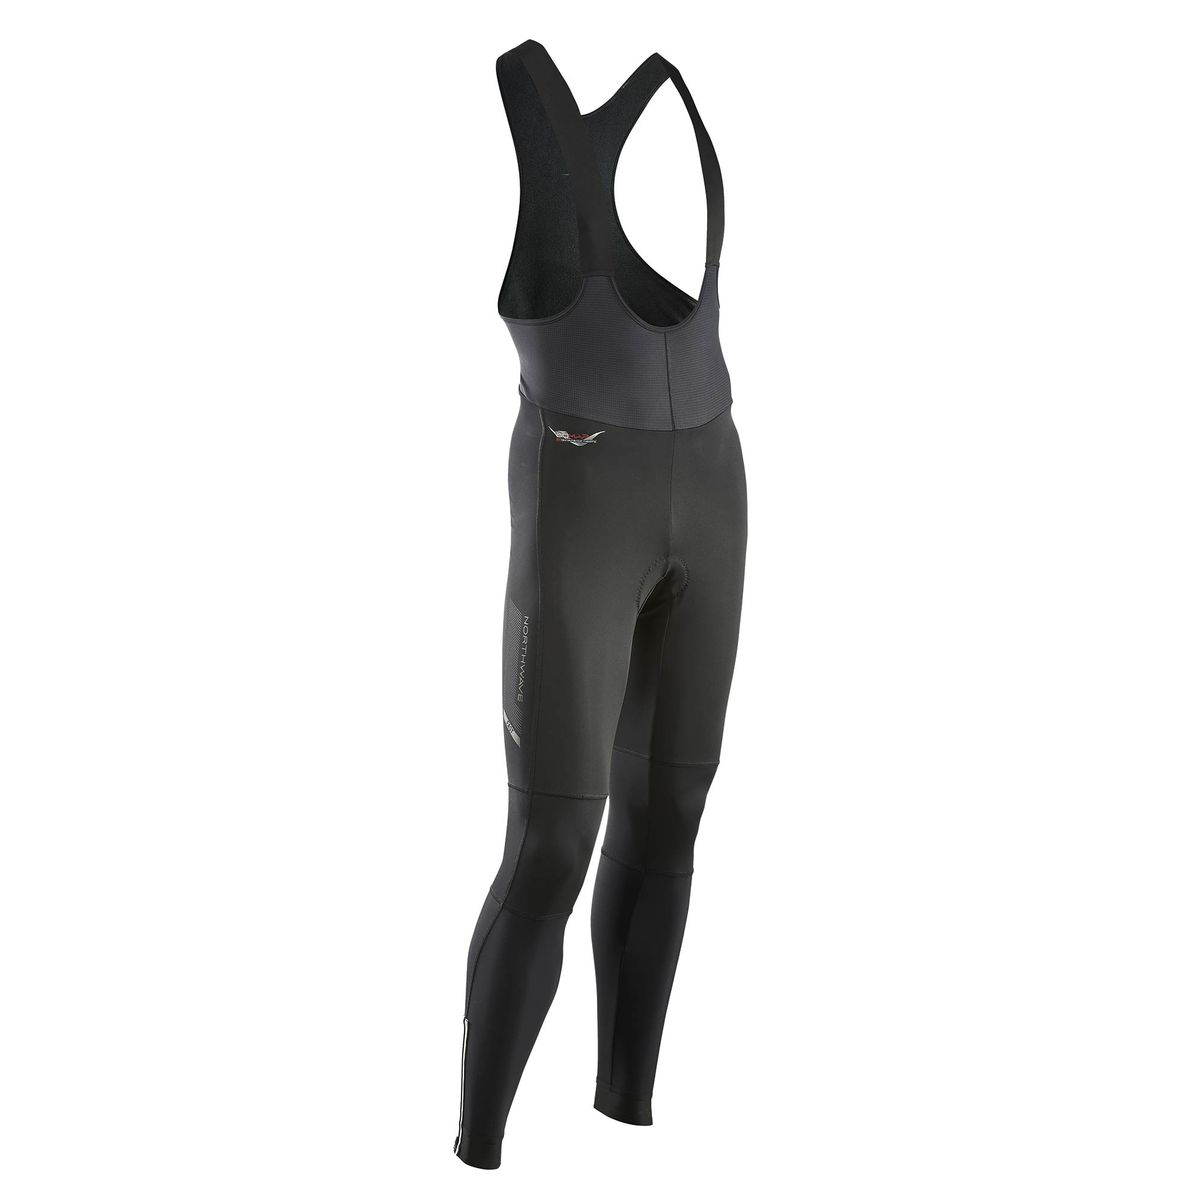 FAST BIBTIGHTS SELECTIVE PROTECTION thermal bib tights